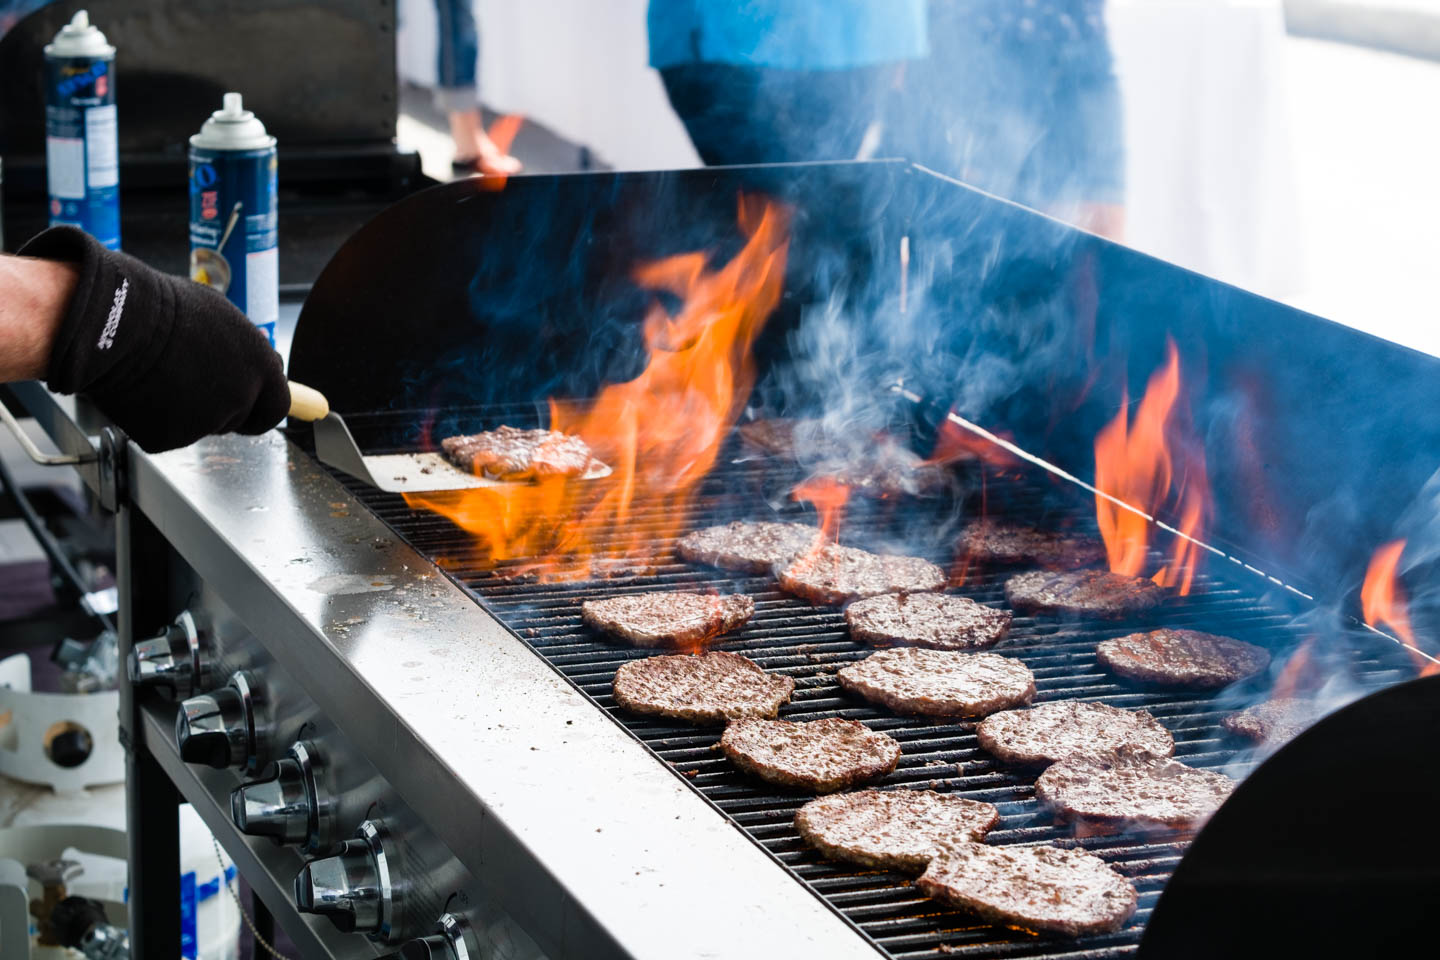 Grilled hamburgers for the volunteers